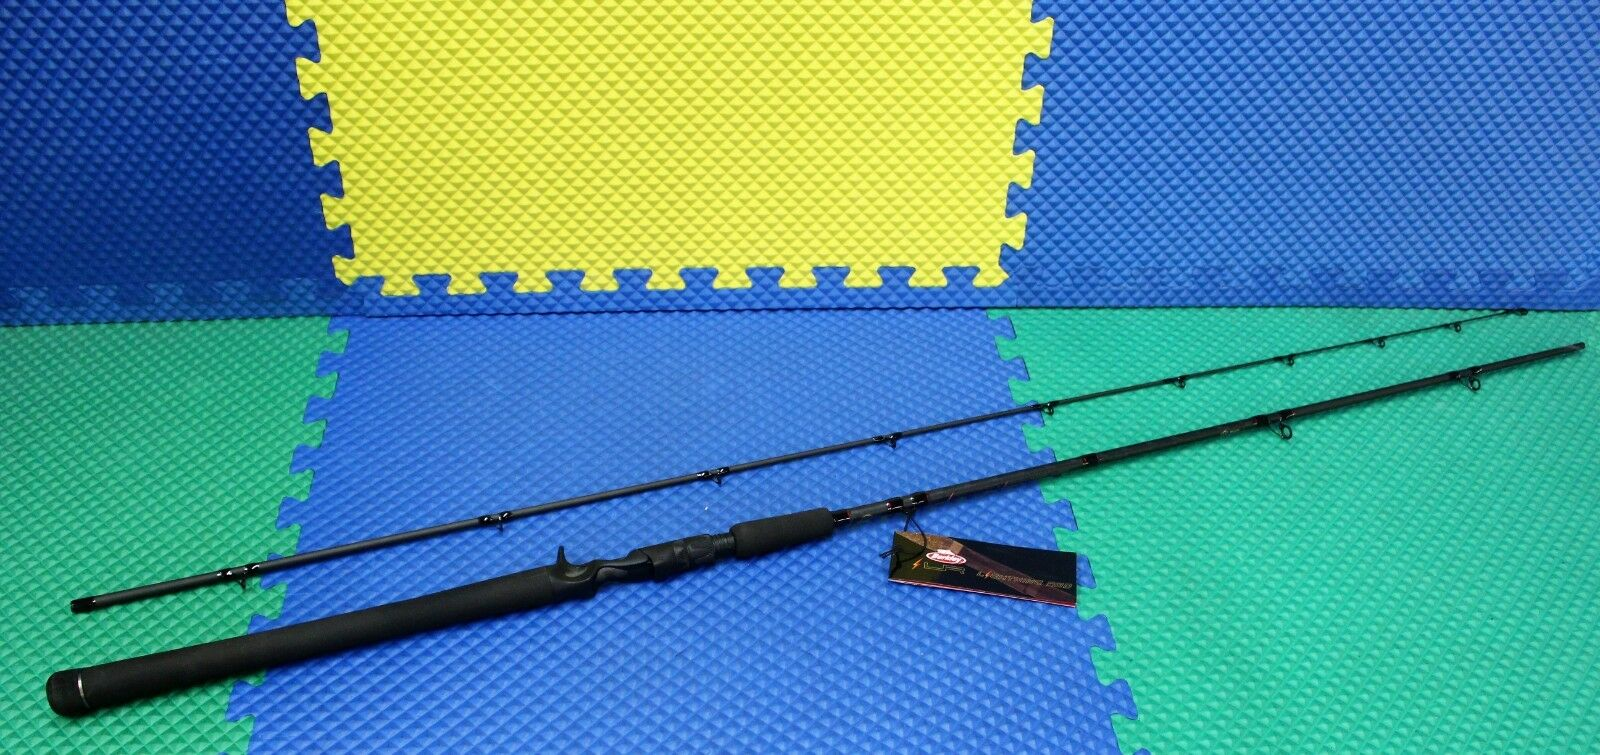 Berkley Lightning Trolling Rod 8' 6  Medium 2-Piece BTLR862M 1429052